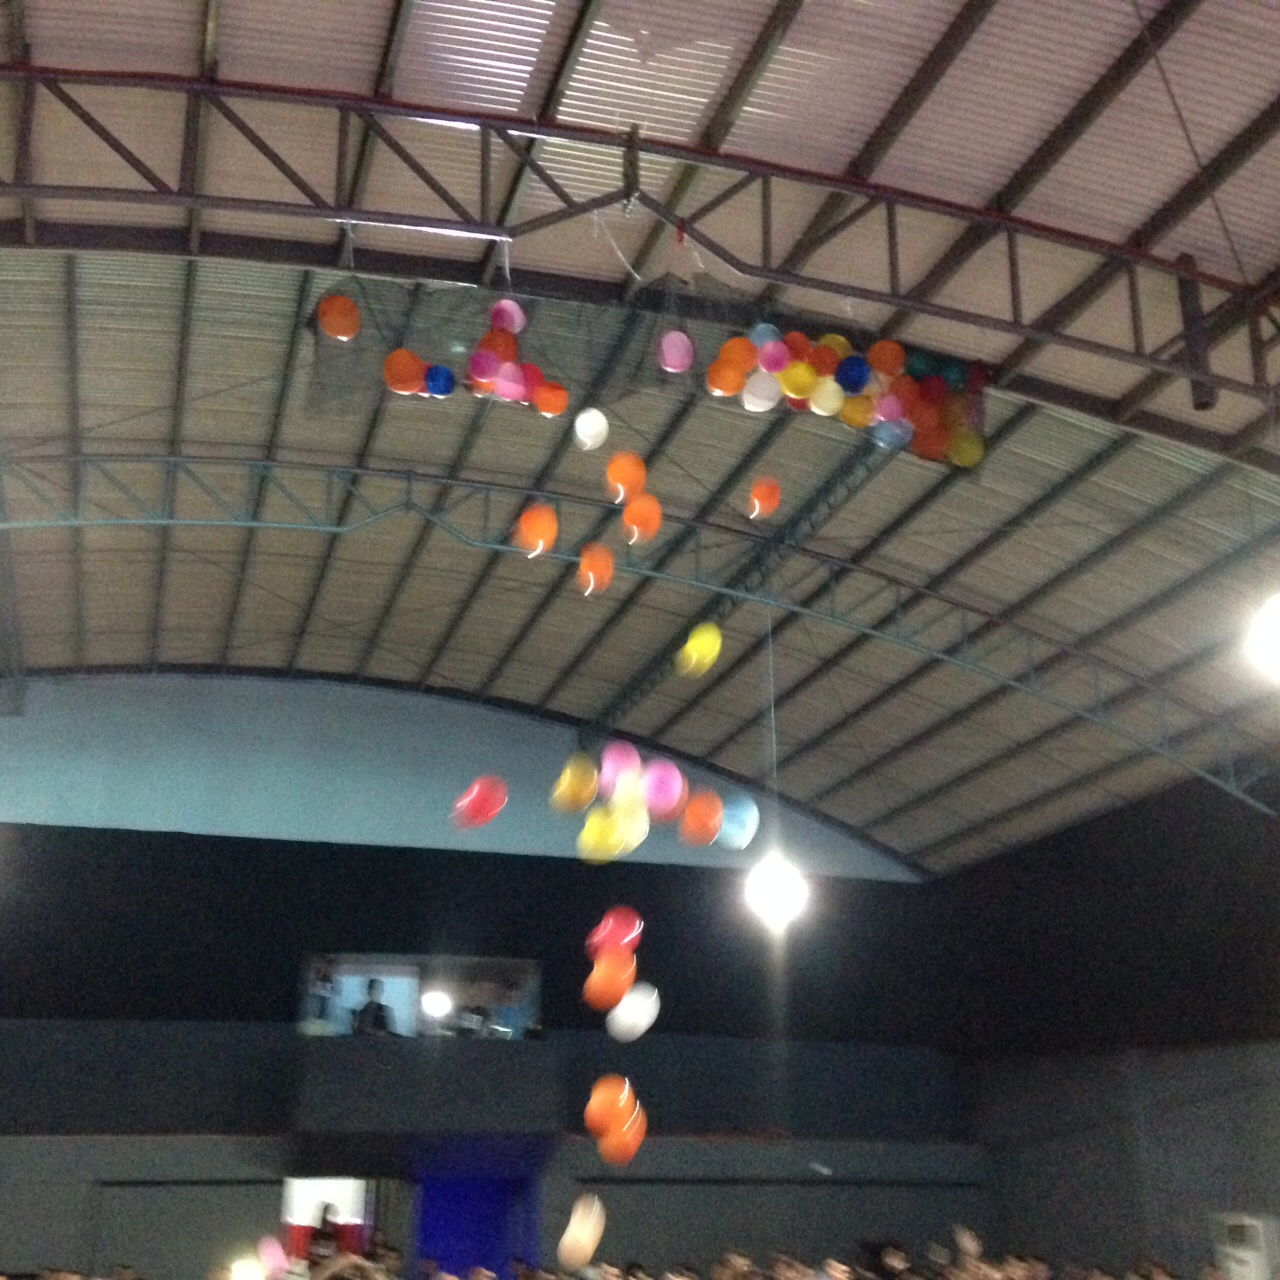 At the close of the Dedication service, balloons were released from the ceiling to celebrate